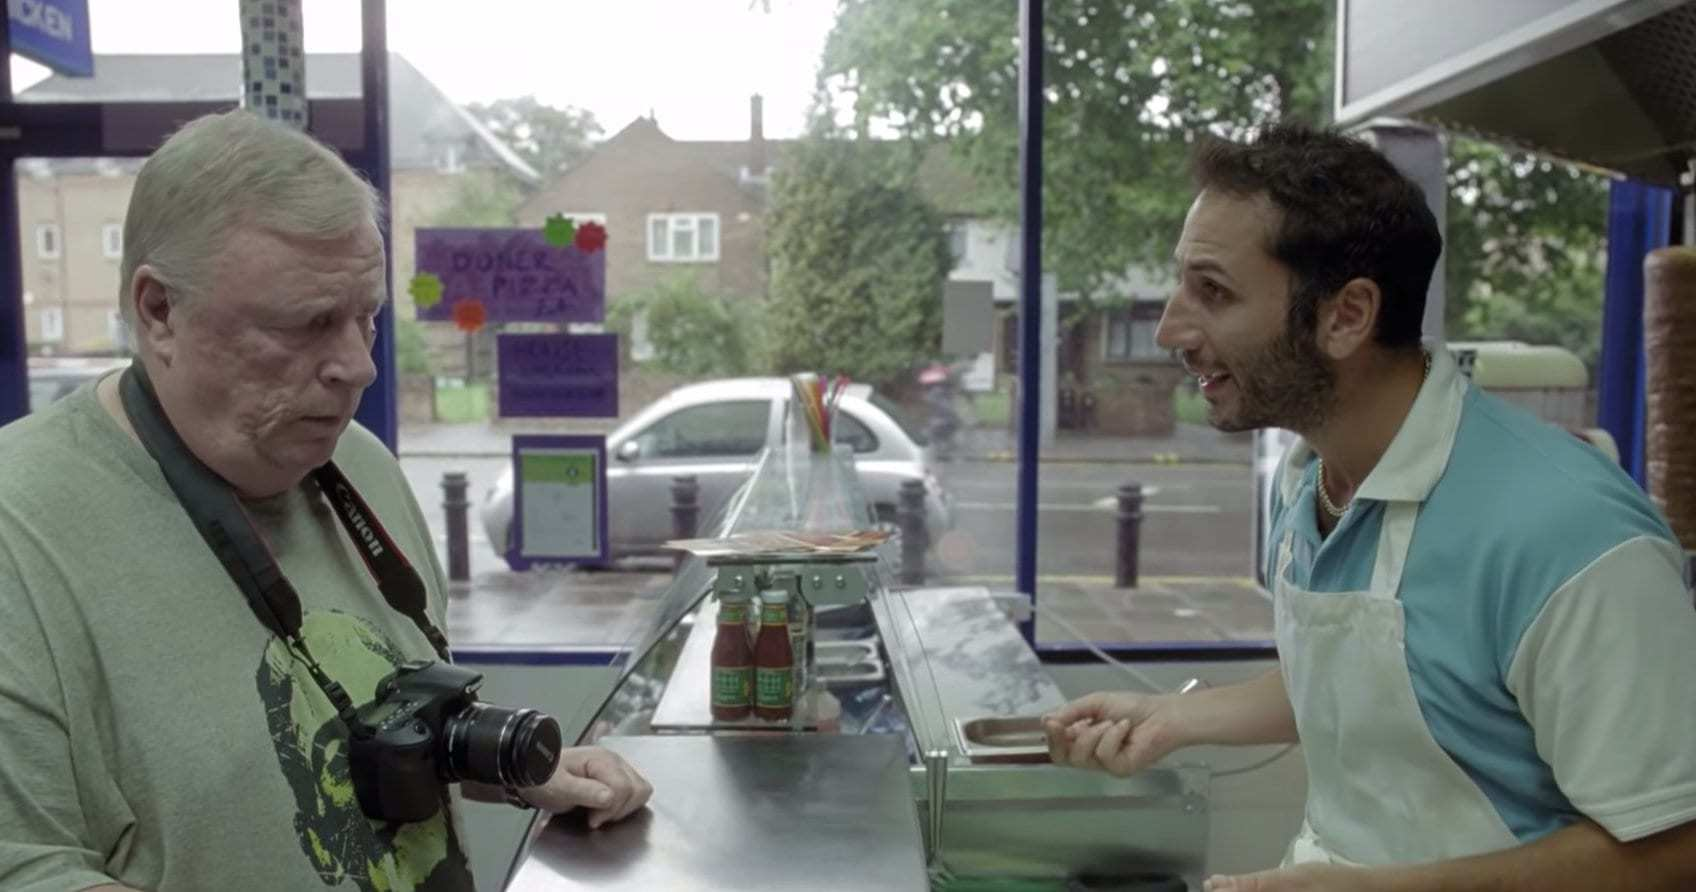 Boris In the Forest - Short Film Review - Indie Shorts Mag